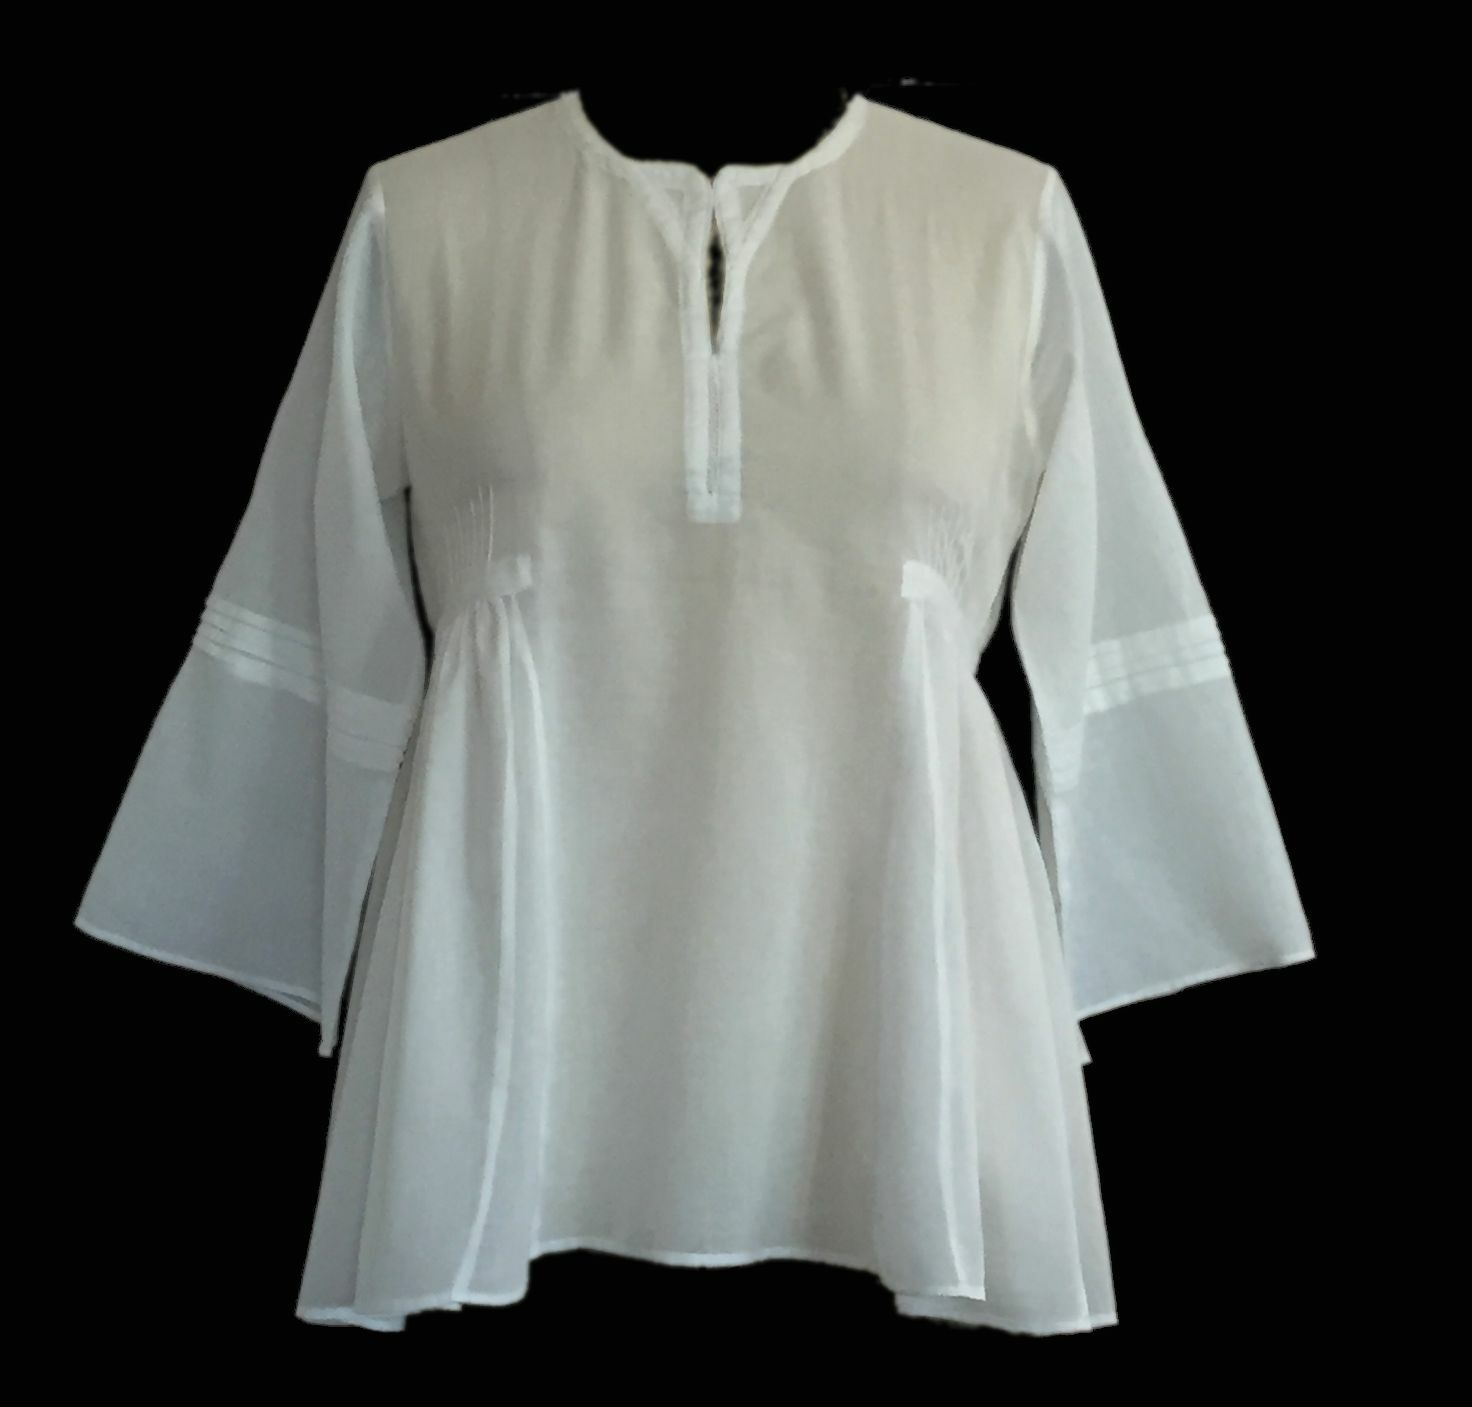 Anokhi White Sufi Blouse, 100% Organic Cotton